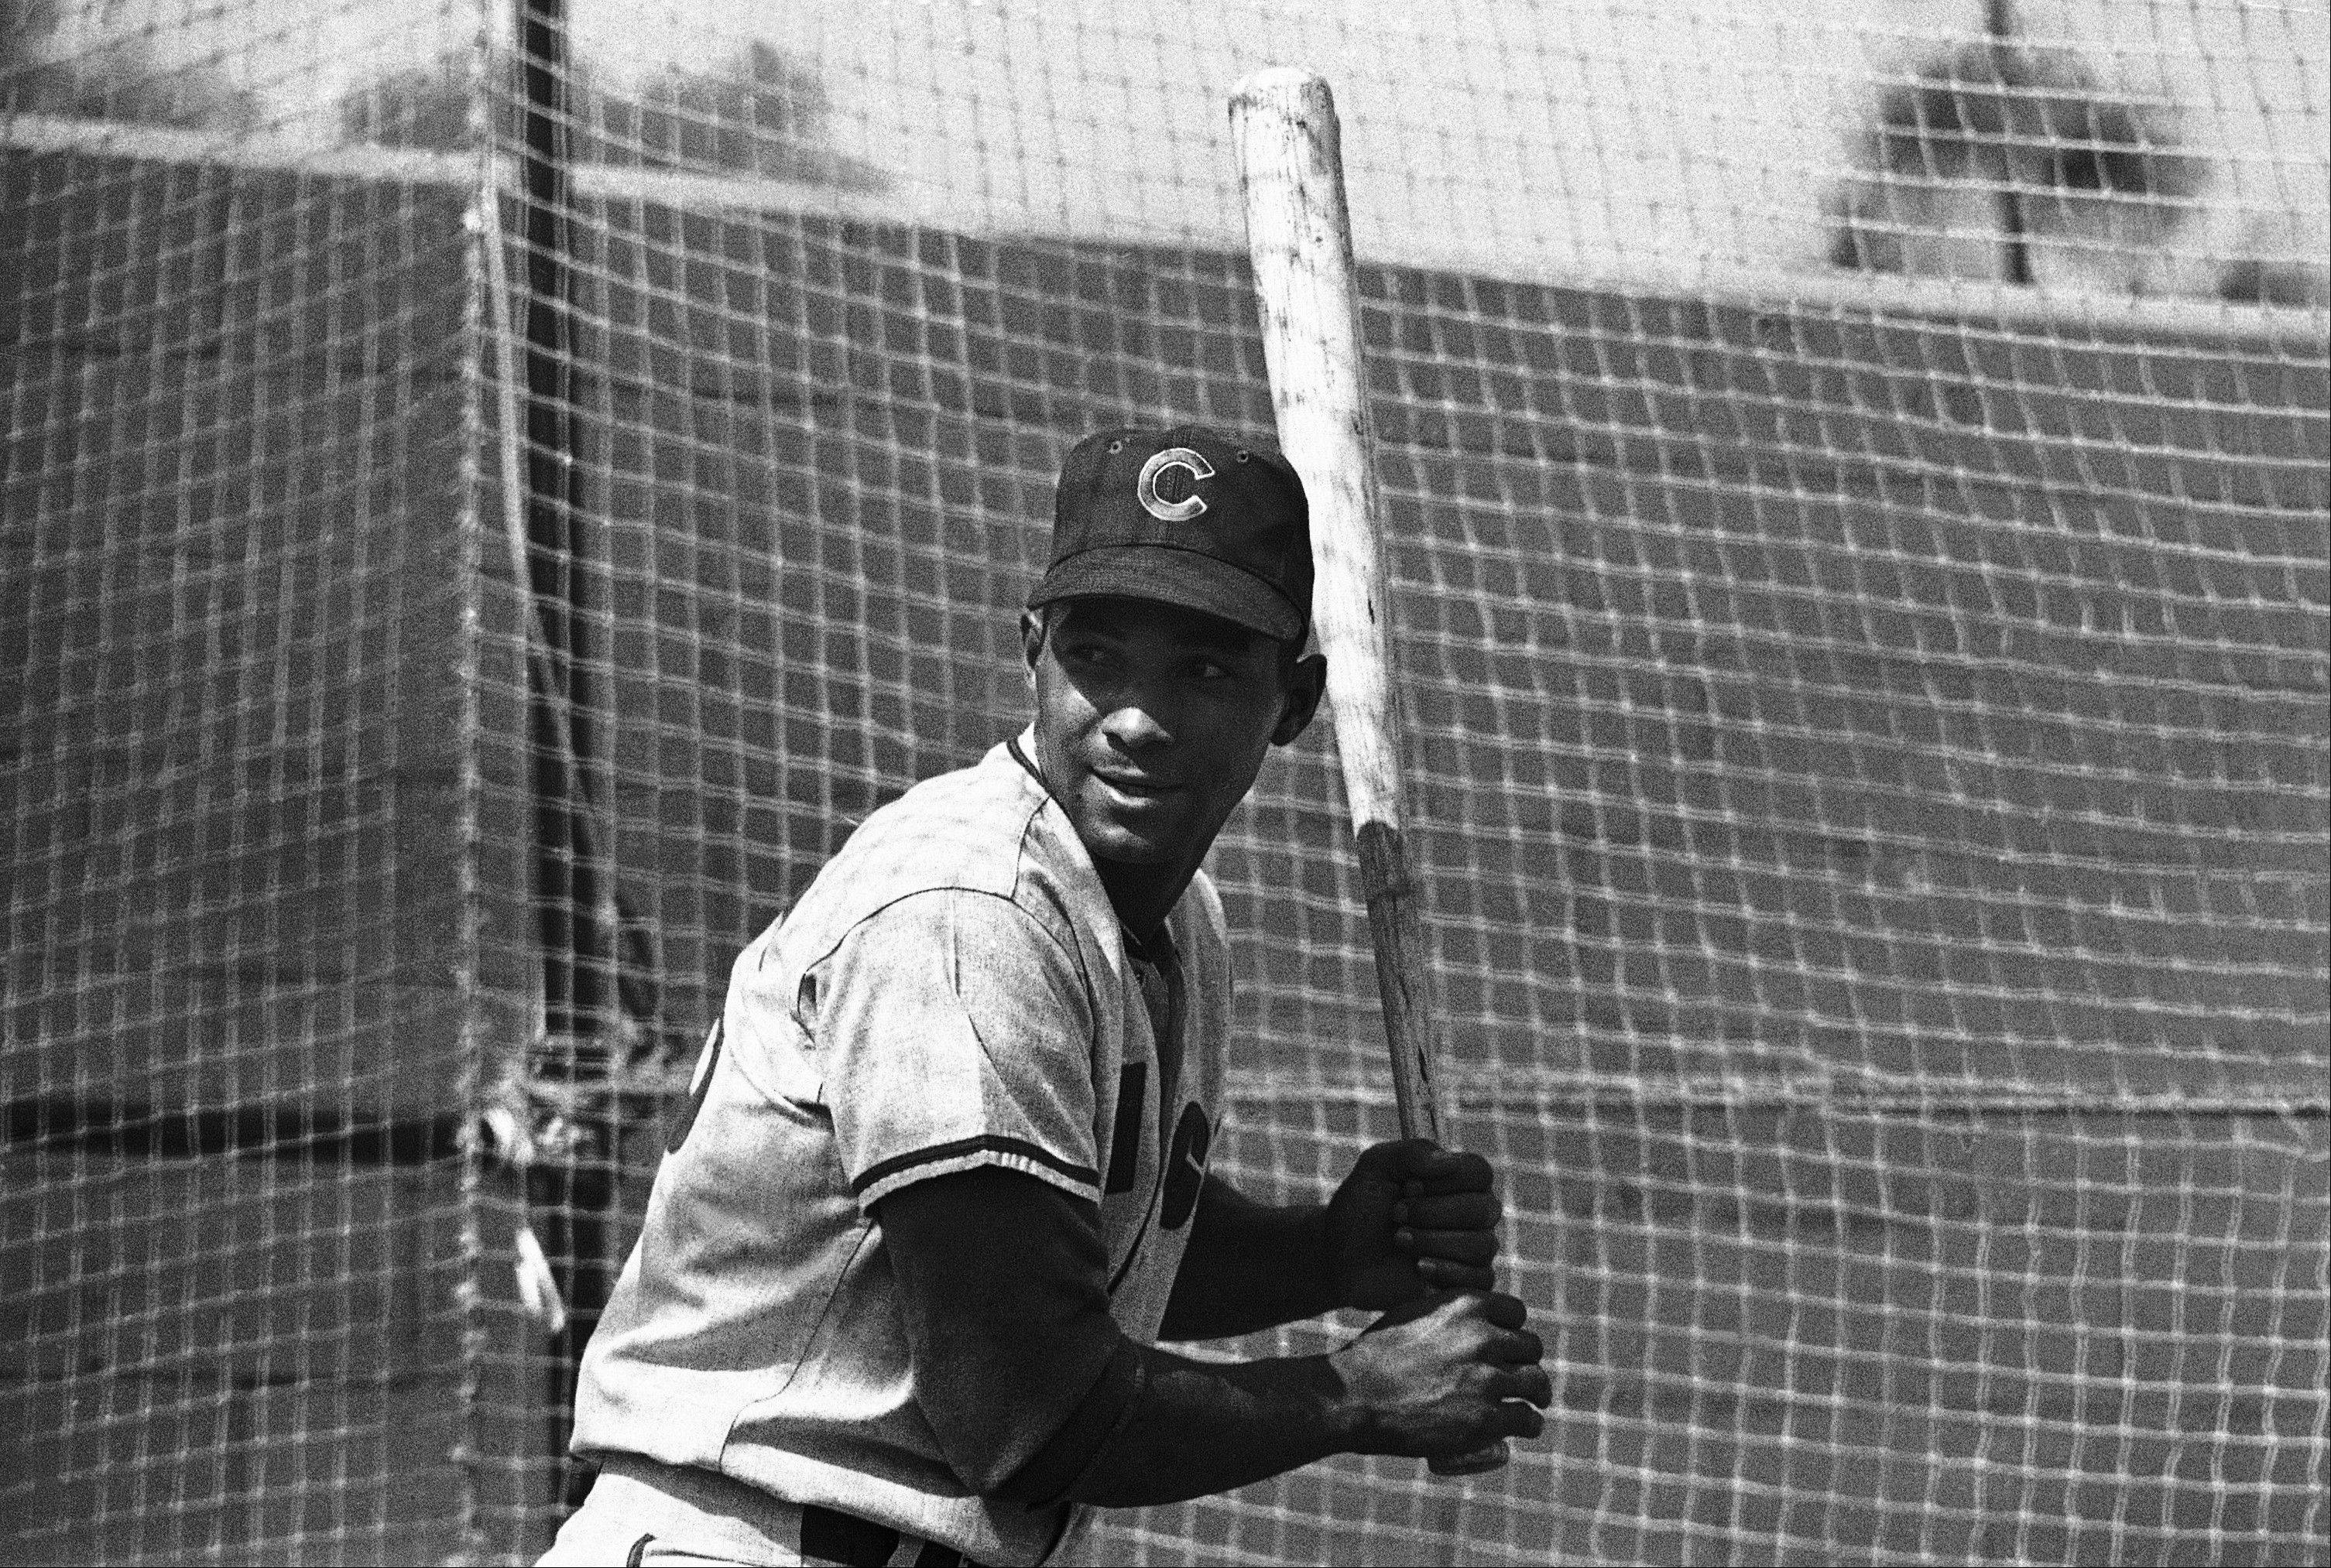 Billy Williams the cubs at spring training on Feb. 28, 1966 at Long Beach., Calif.